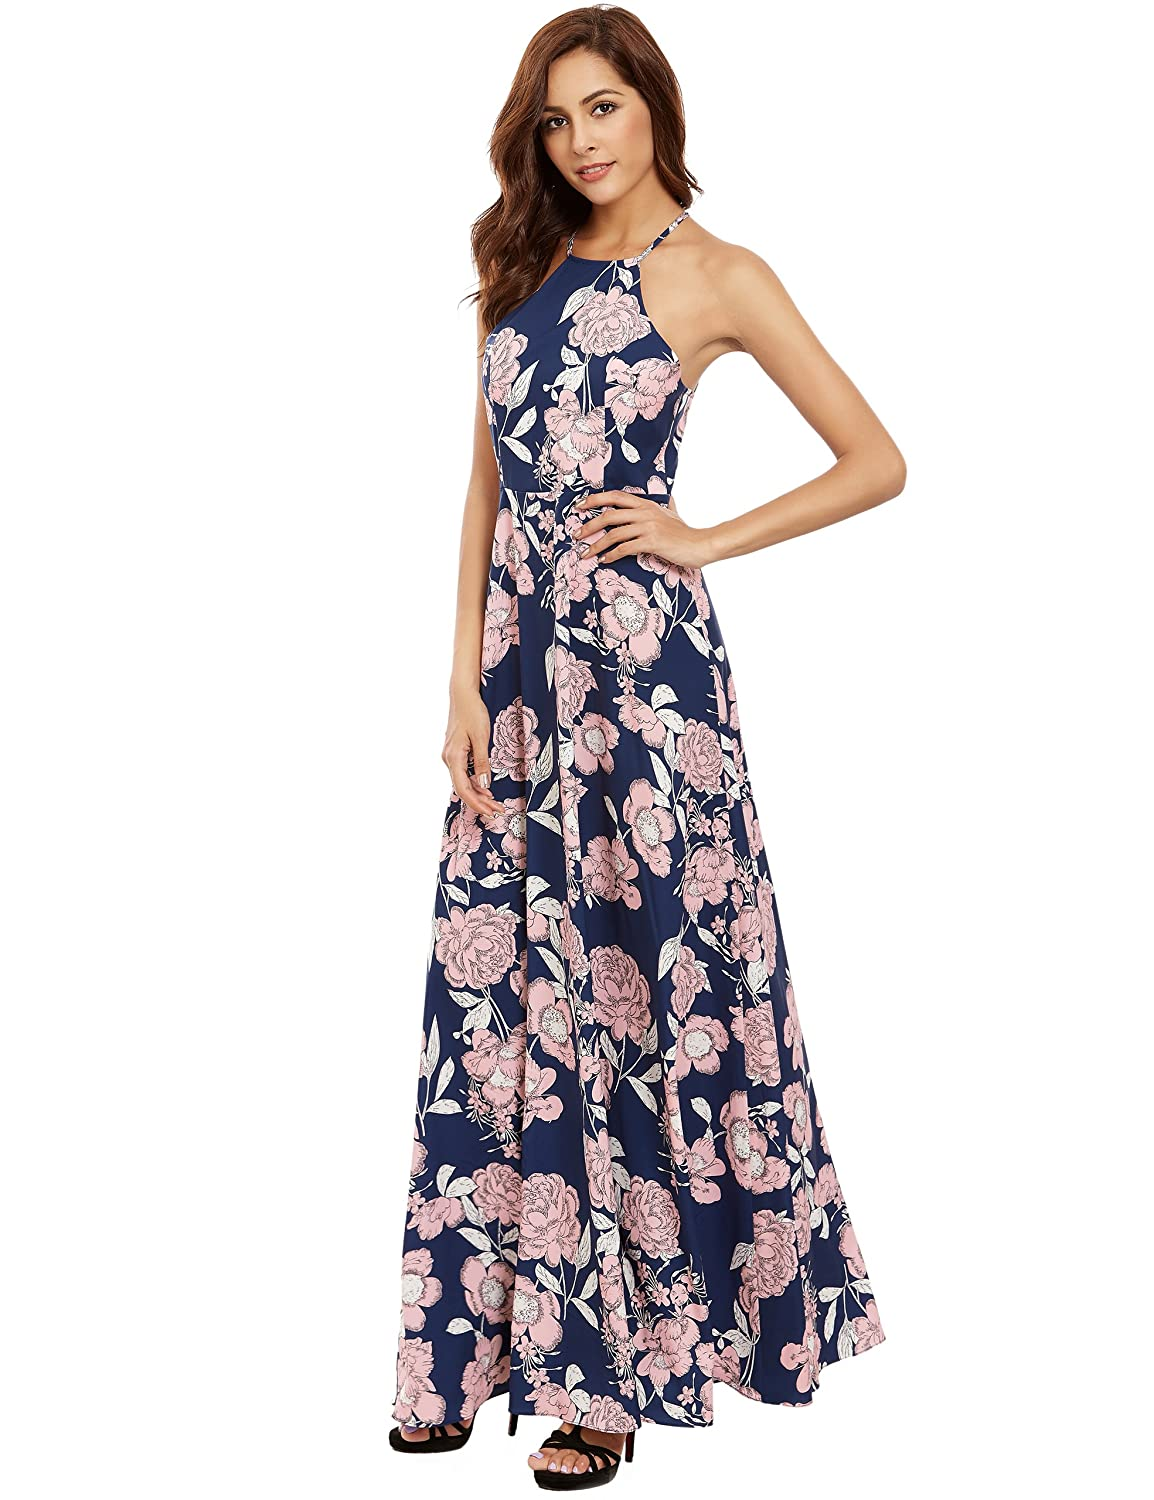 1aaba90a8b Floerns Women's Sleeveless Halter Neck Vintage Floral Print Maxi Dress:  Amazon.ca: Clothing & Accessories